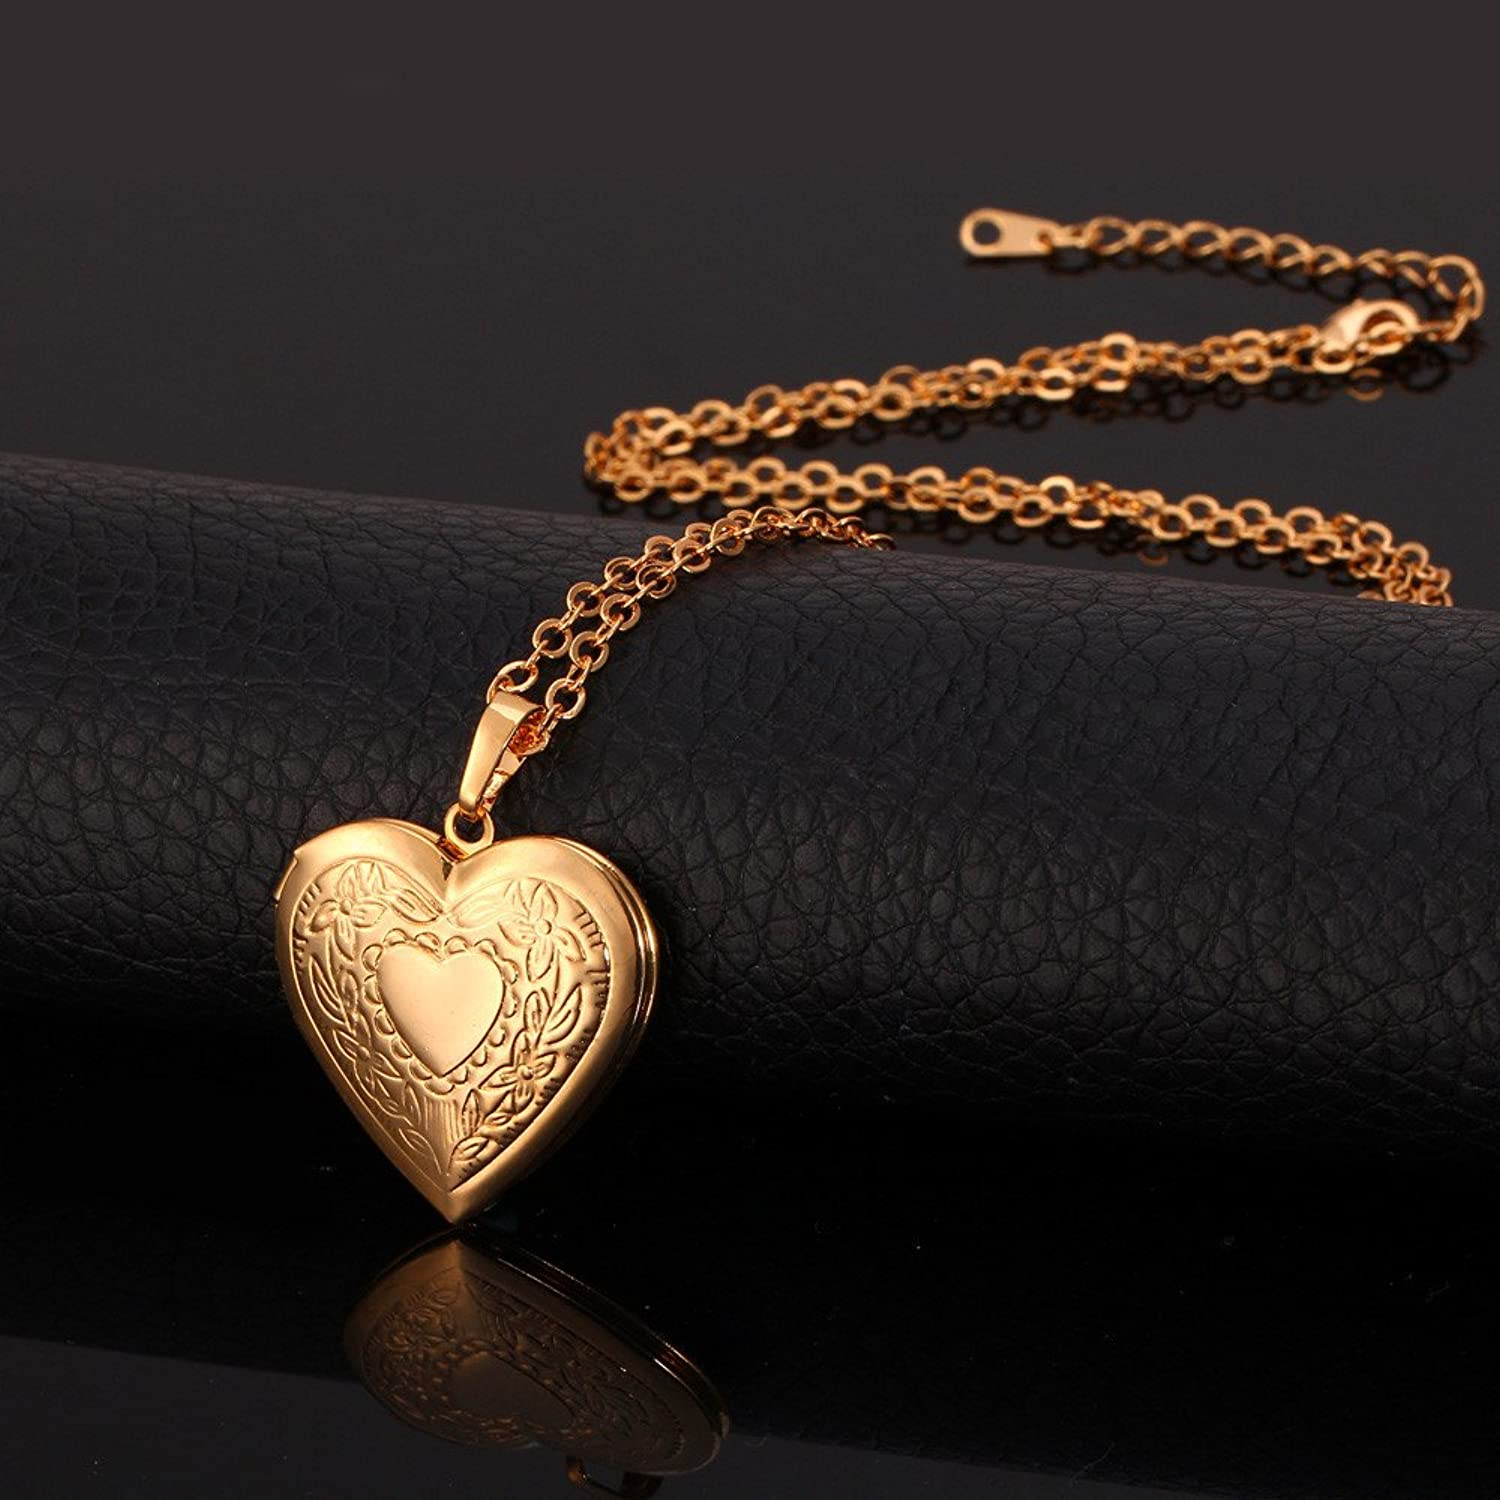 amazon lockets dp heart locket jewelry women photo com gold plated necklace pendant